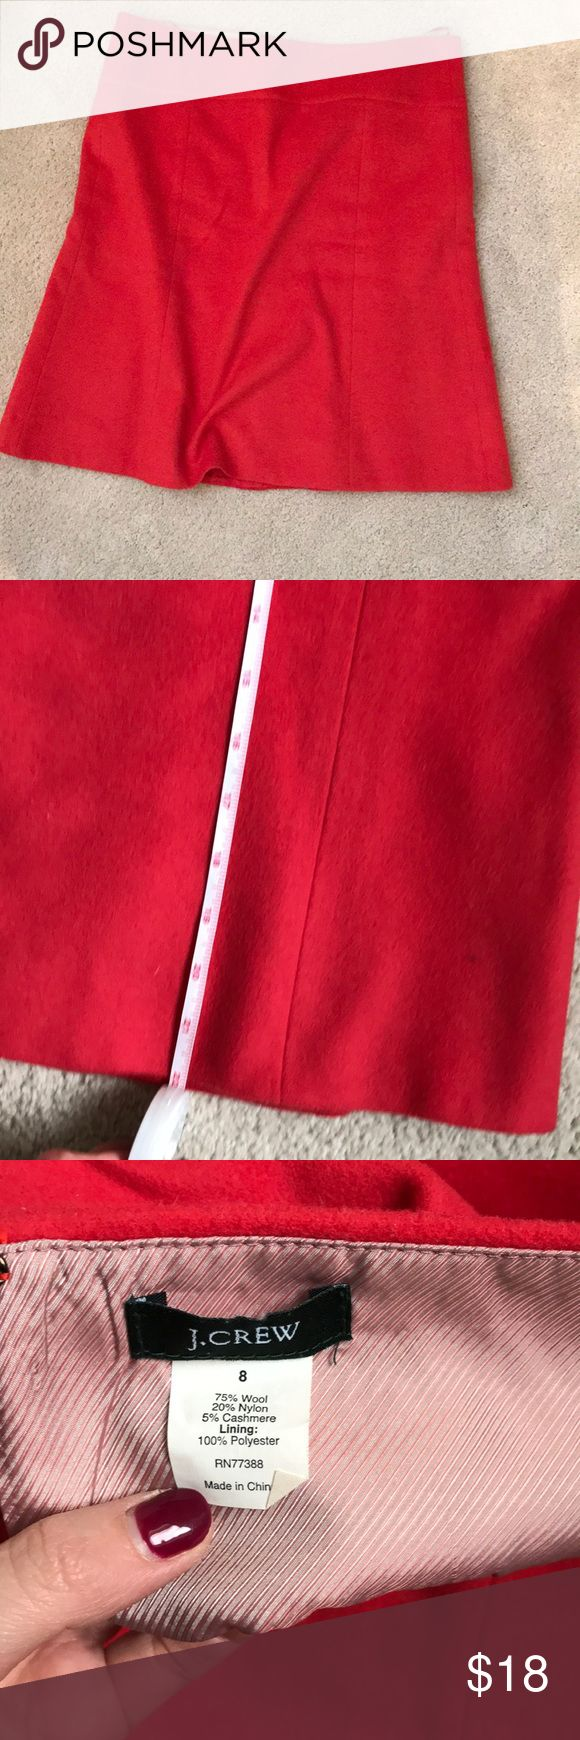 J. Crew wool skirt sz 8 J. Crew. Gorgeous coral/red wool skirt. Sz 8 slight flair. Great condition, however the zipper in broken. Smoke free home. Great color for spring. J. Crew Skirts